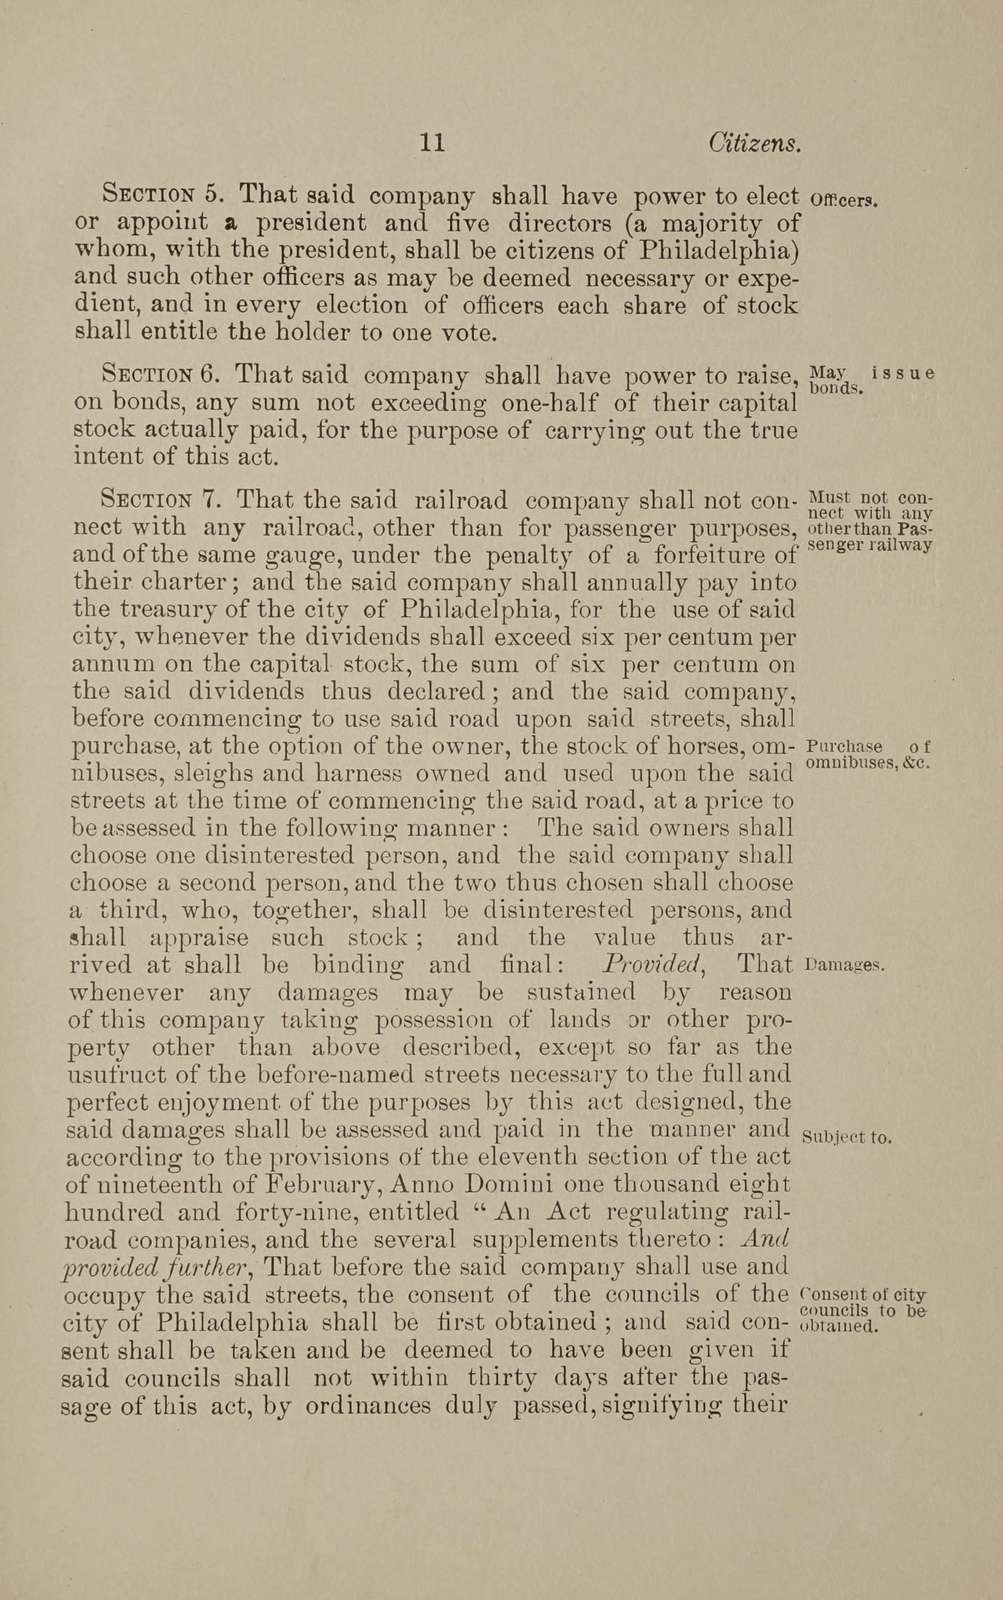 Acts of Assembly and ordinances relating to Philadelphia passenger railways and steam railroads within the city limits,